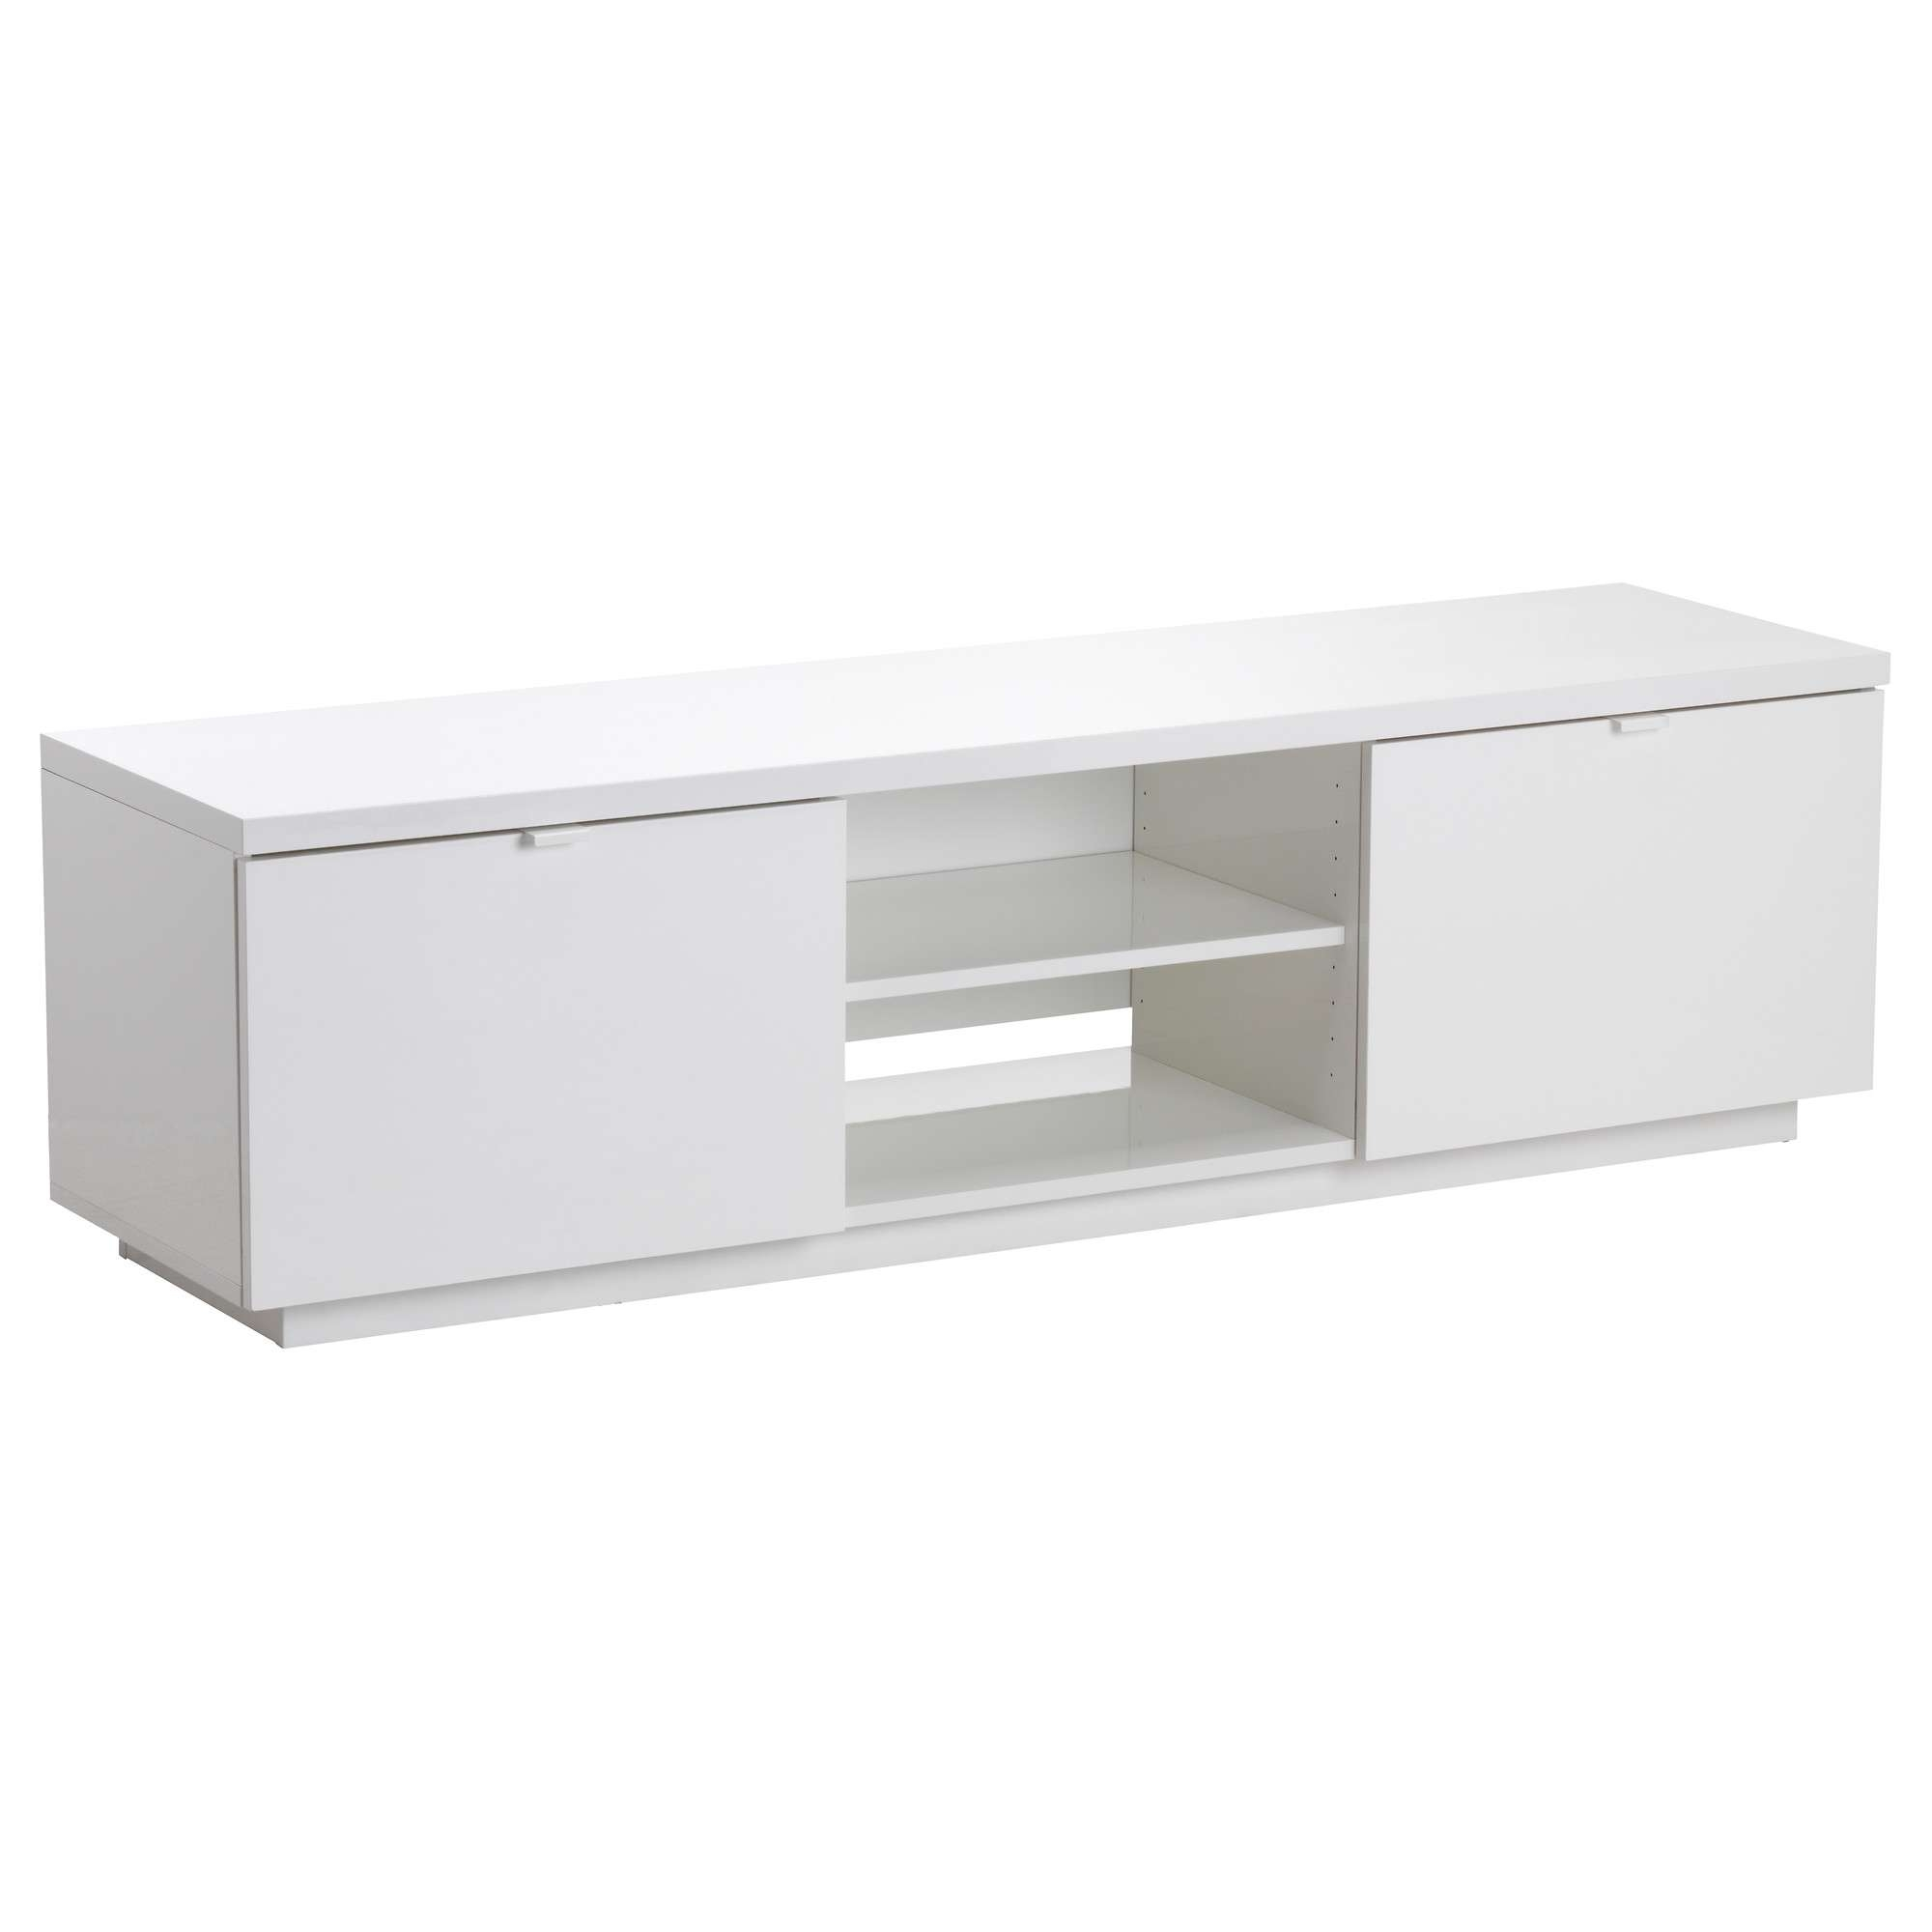 Tv Tables – Tv Benches | Ikea For Oval White Tv Stands (View 10 of 20)